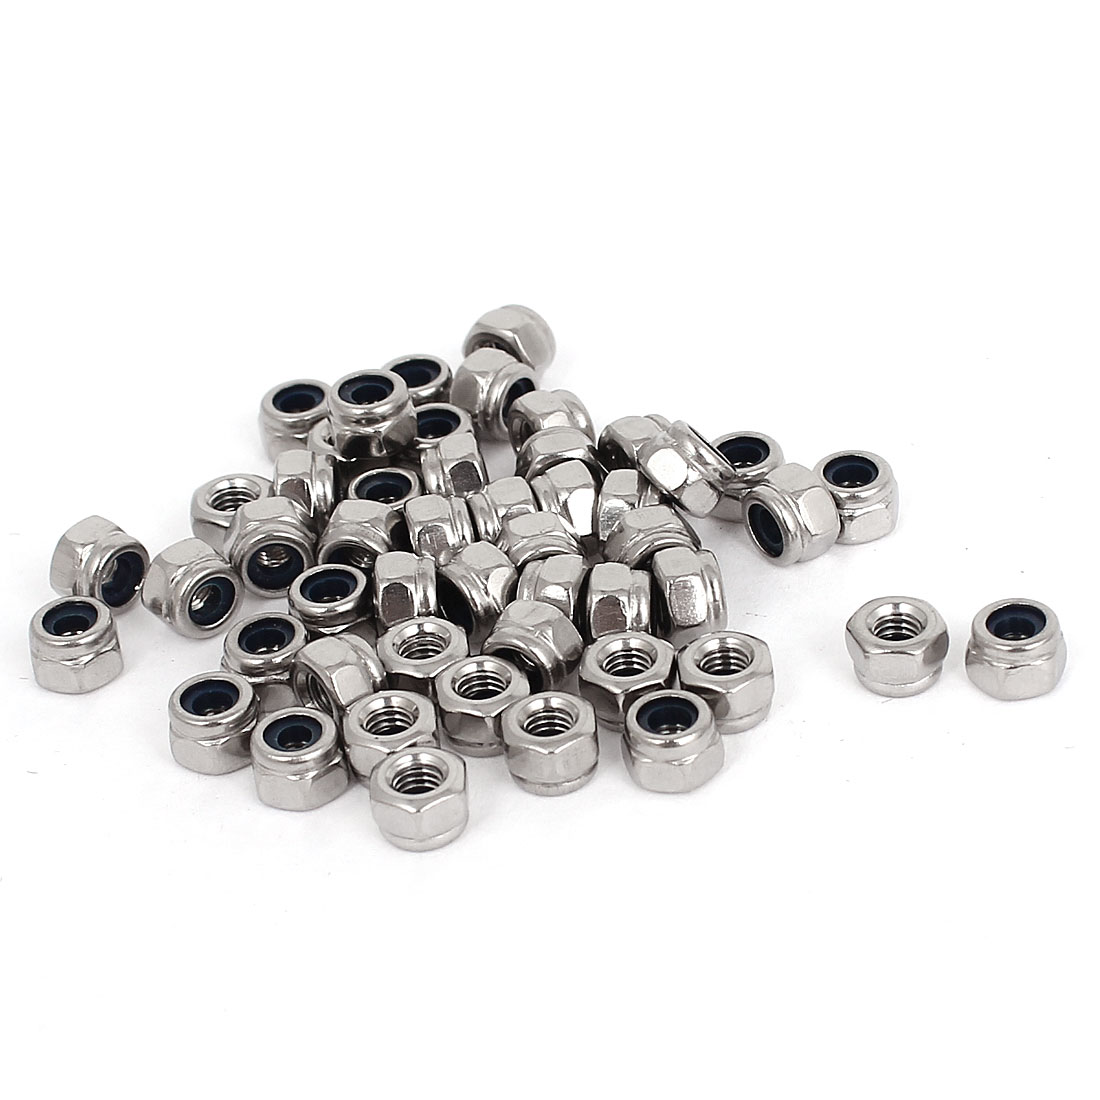 M3 x 0.5mm 304 Stainless Steel Nylock Nylon Insert Hex Lock Nuts 50pcs